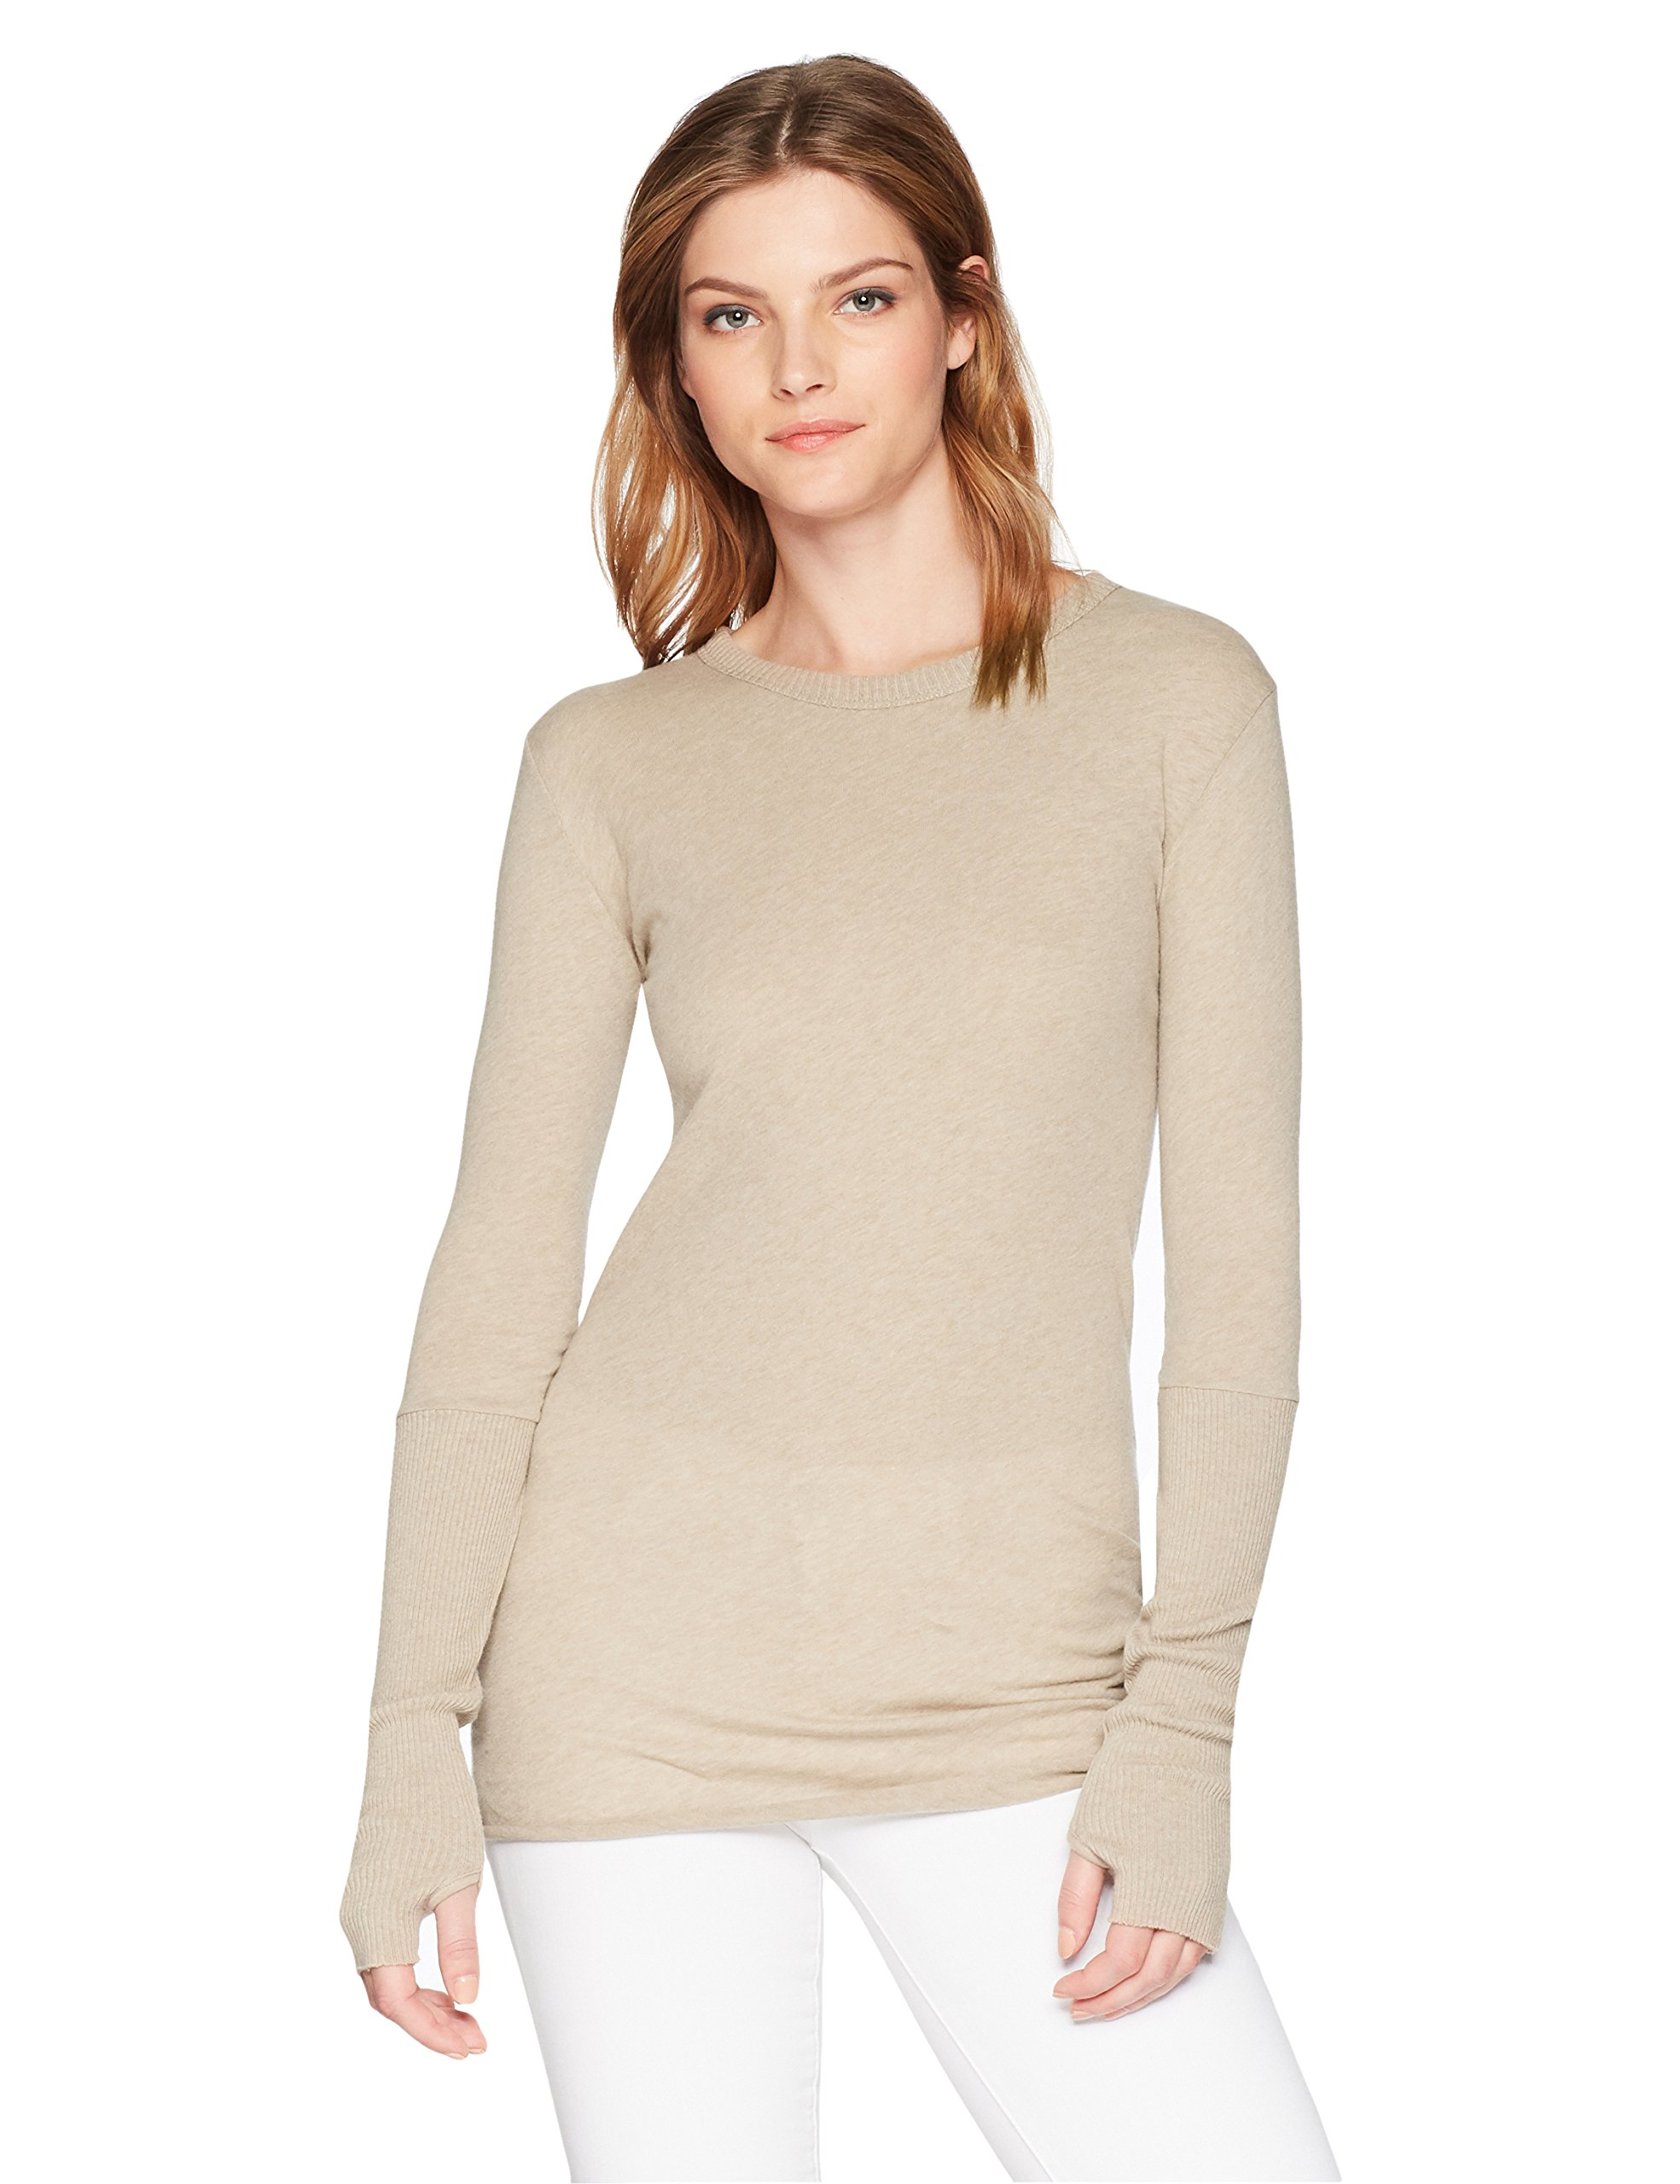 Enza Costa Women's Cashmere Long Sleeve Cuffed Crew Top With Thumbhole, Khaki, L